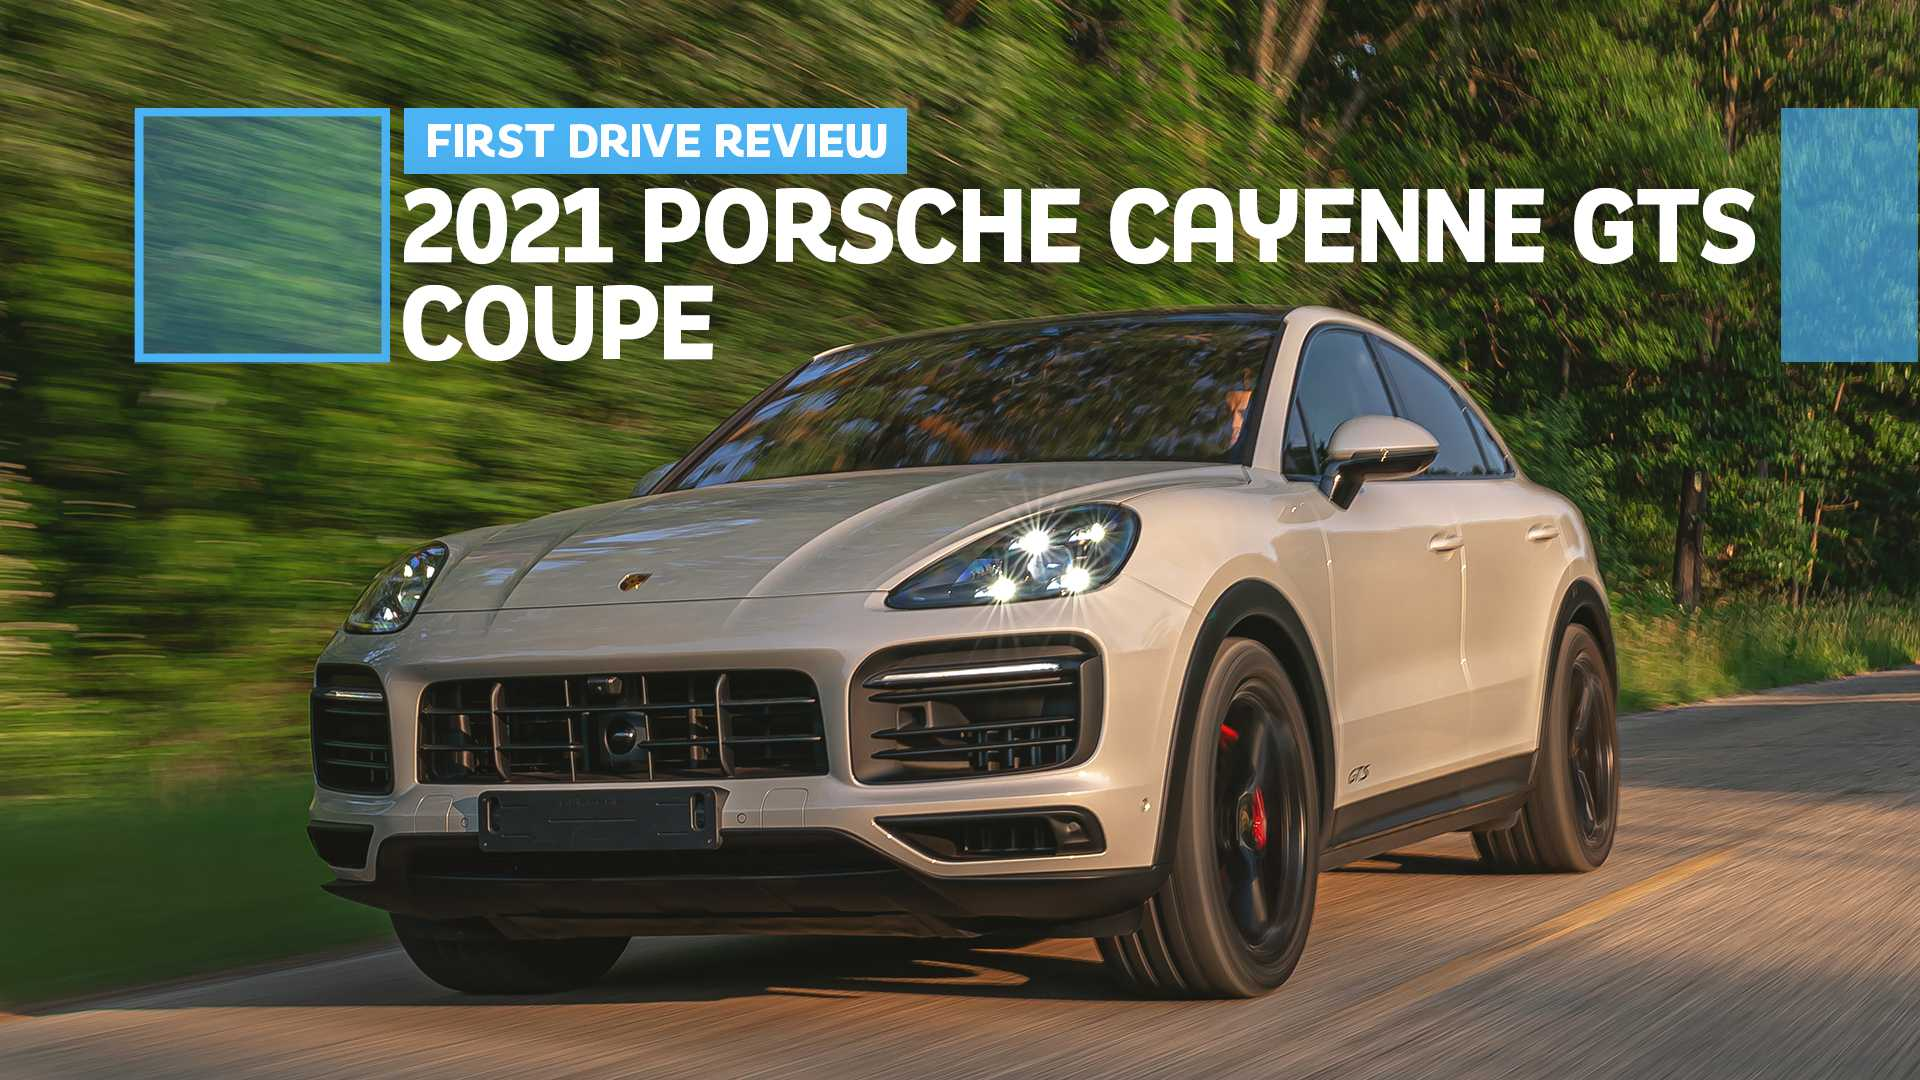 2021 Porsche Cayenne Gts Coupe First Drive Review Another Great Gts